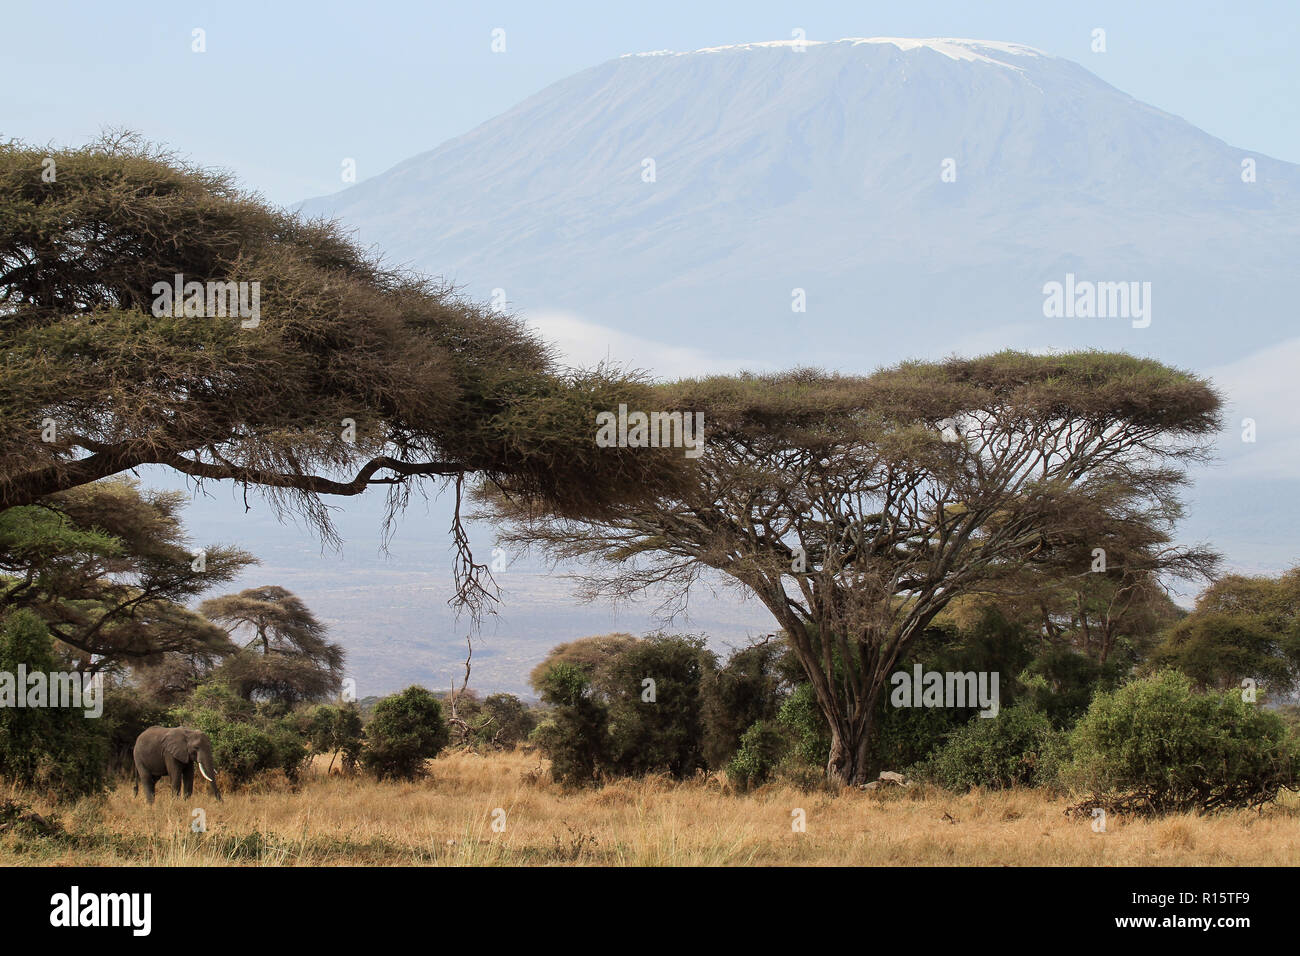 An elephant in front of the mount Kilimanjaro - Stock Image